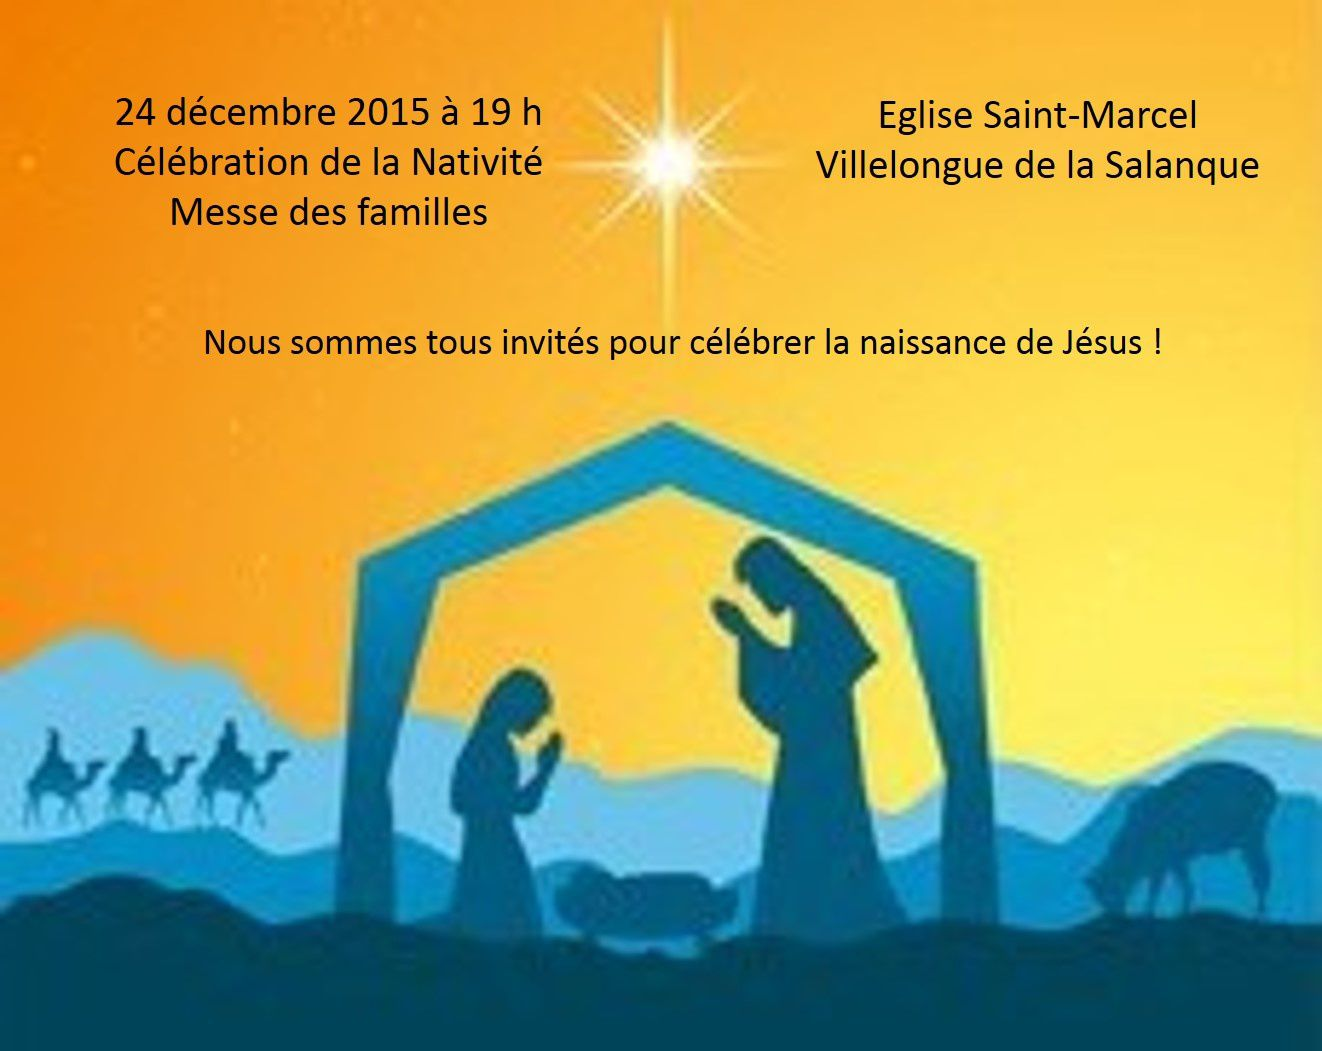 Messes de Noël à Canet, Sainte-Marie et Villelongue